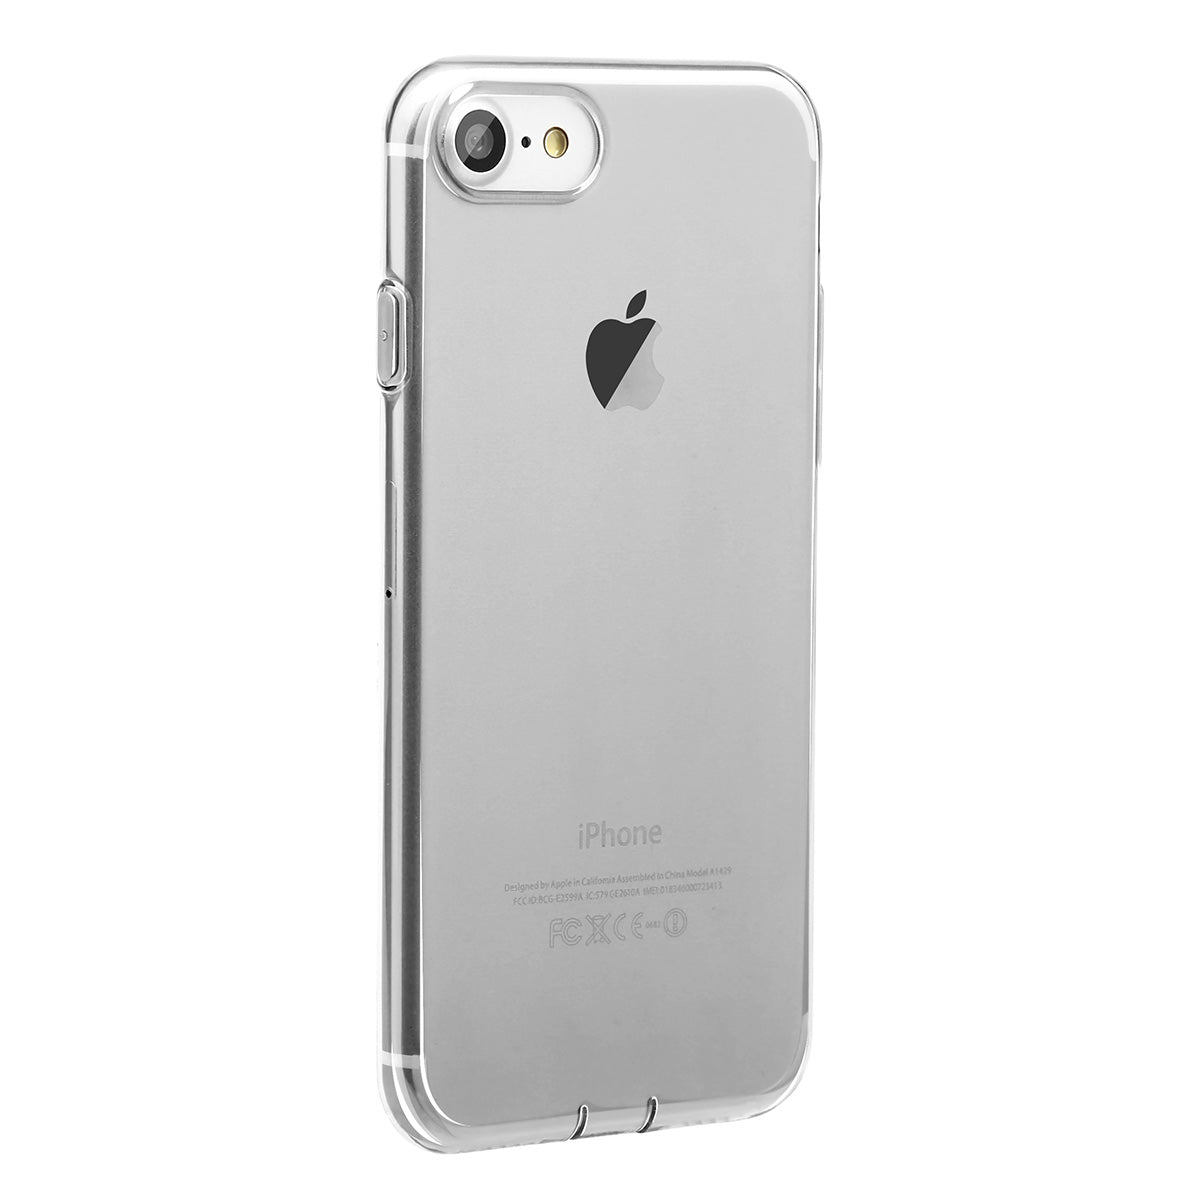 b6b35d9ae2 Ultra Slim Clear Transparent iPhone 7 Plus 5.5 inch Case with dust-proof  plug